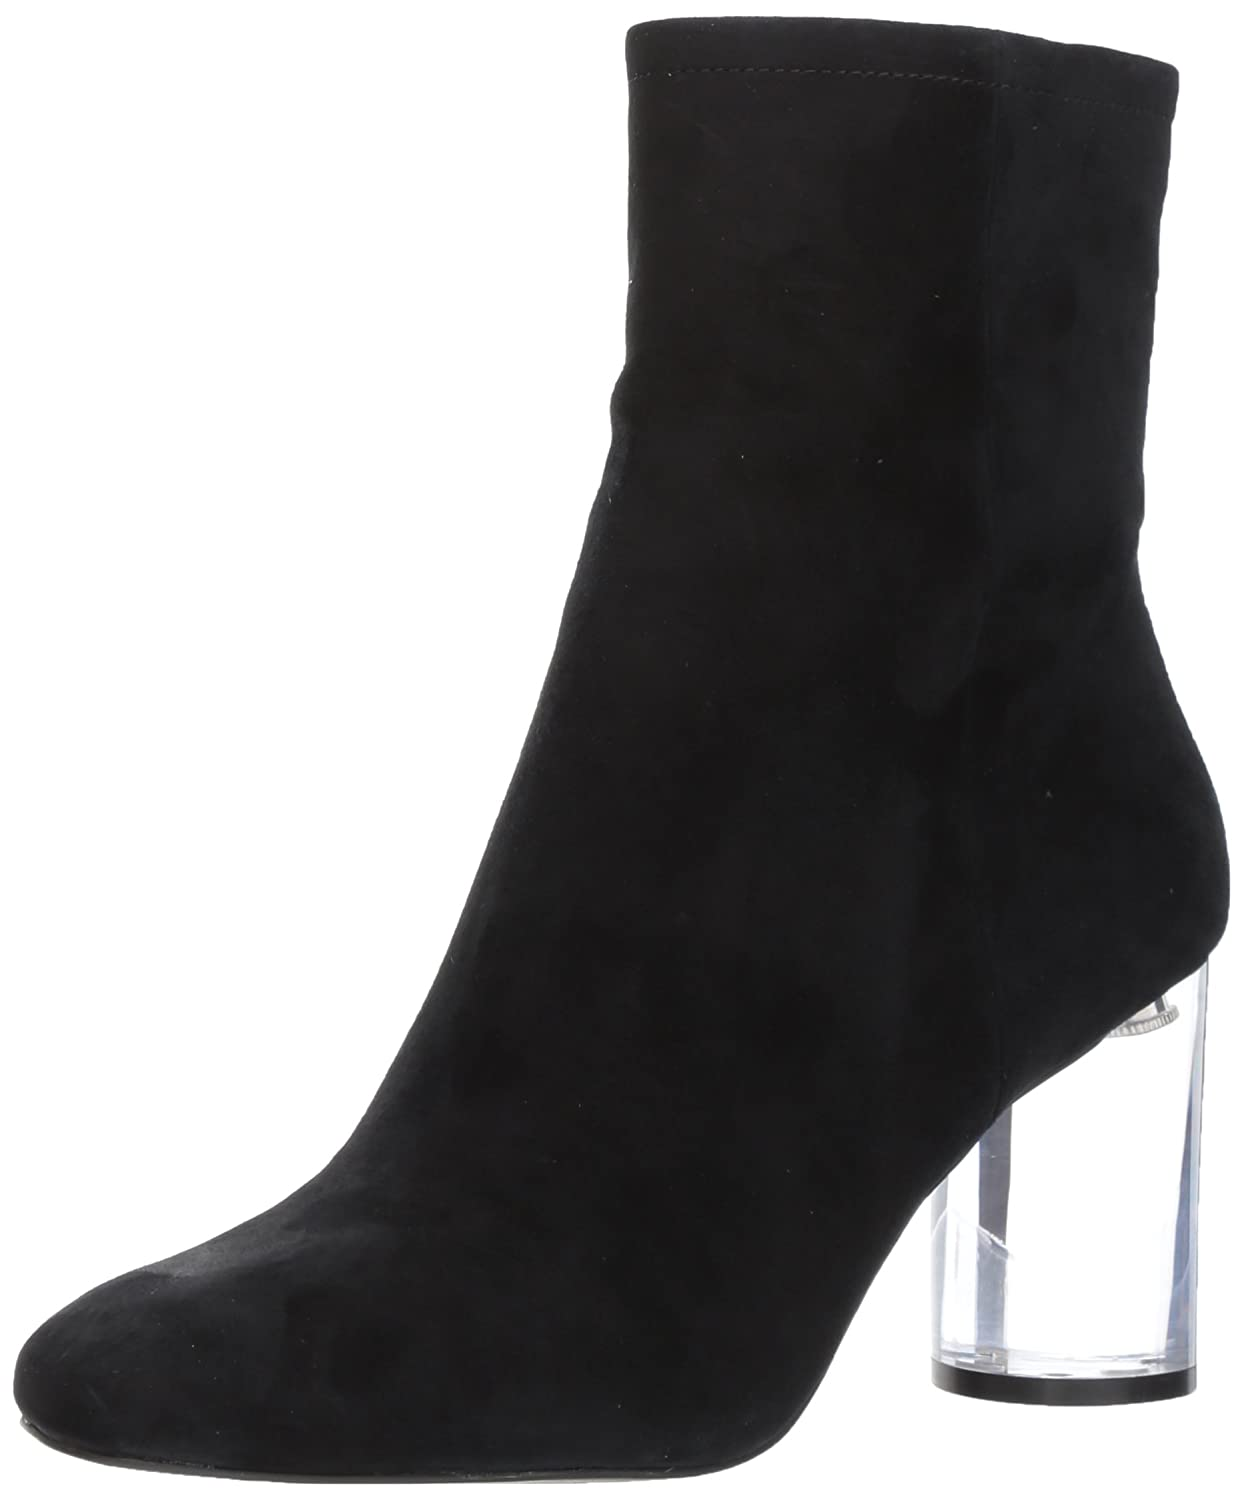 Jessica Simpson Women's Merta Fashion Boot B0728JZ3CQ 7.5 B(M) US|Black Suede